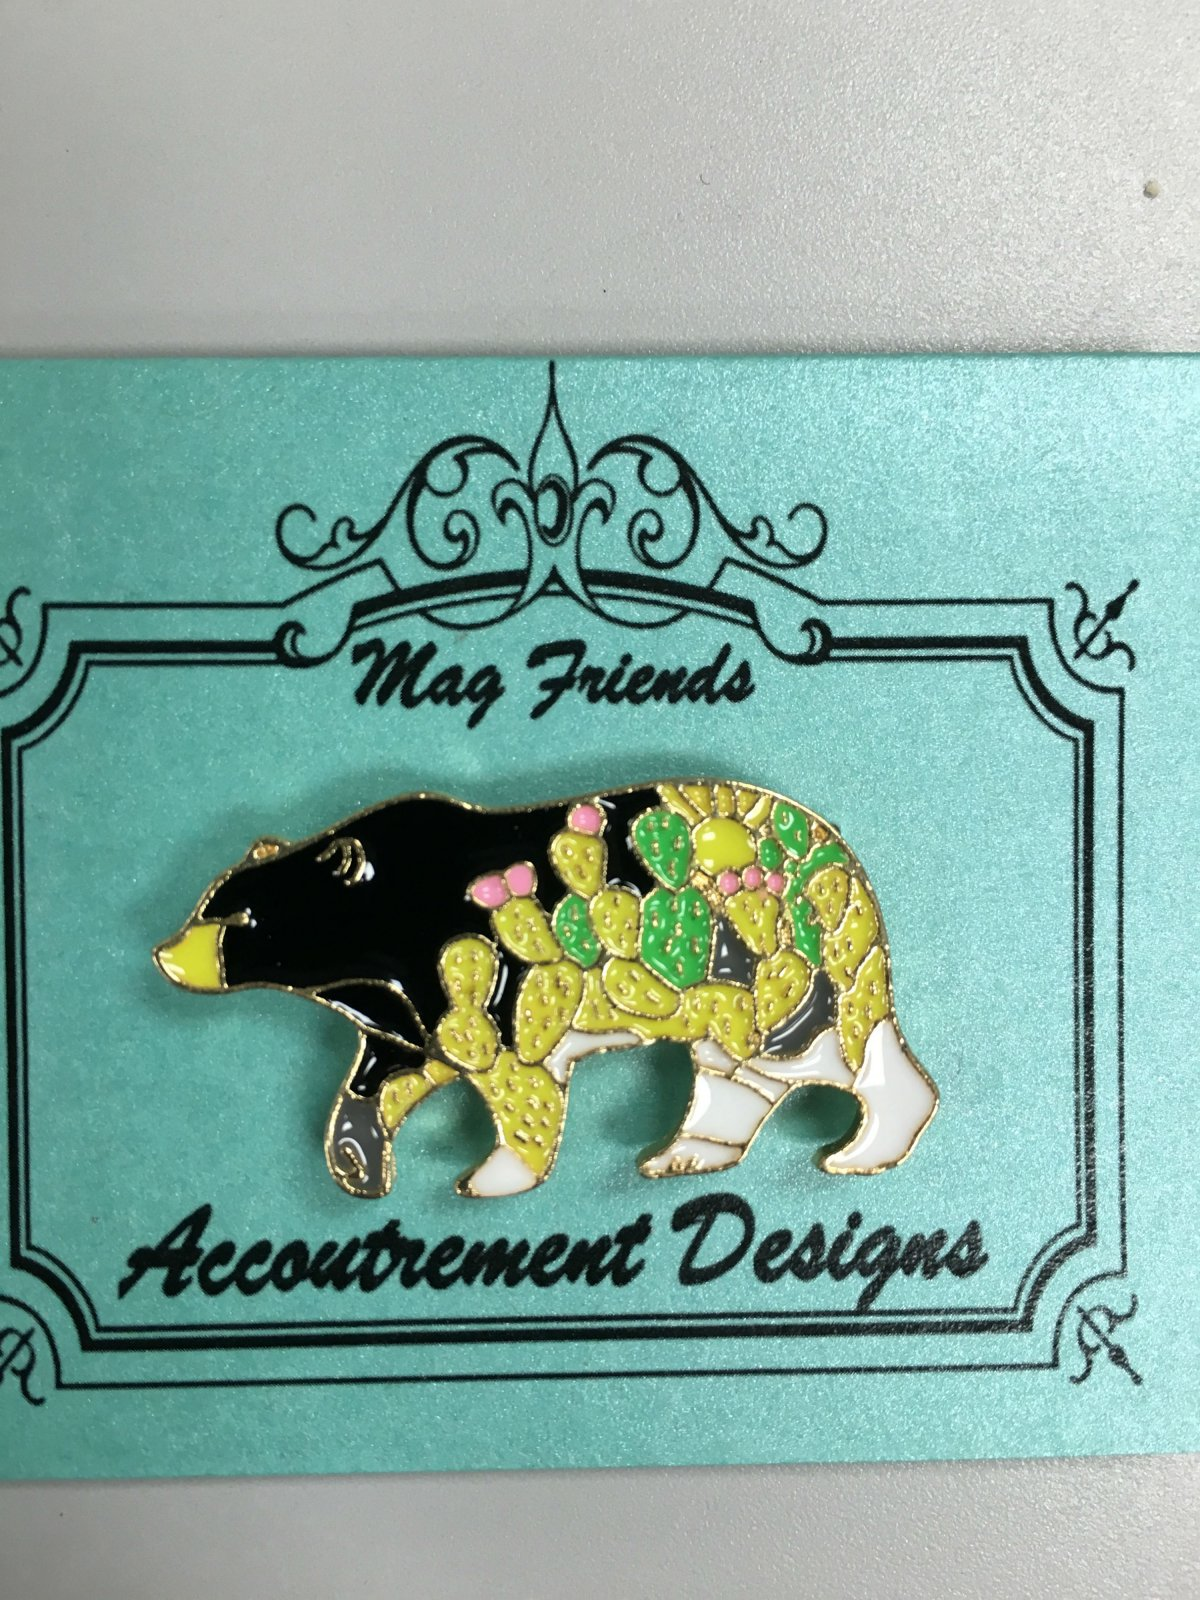 Accoutrement Designs Colorful Black Bear